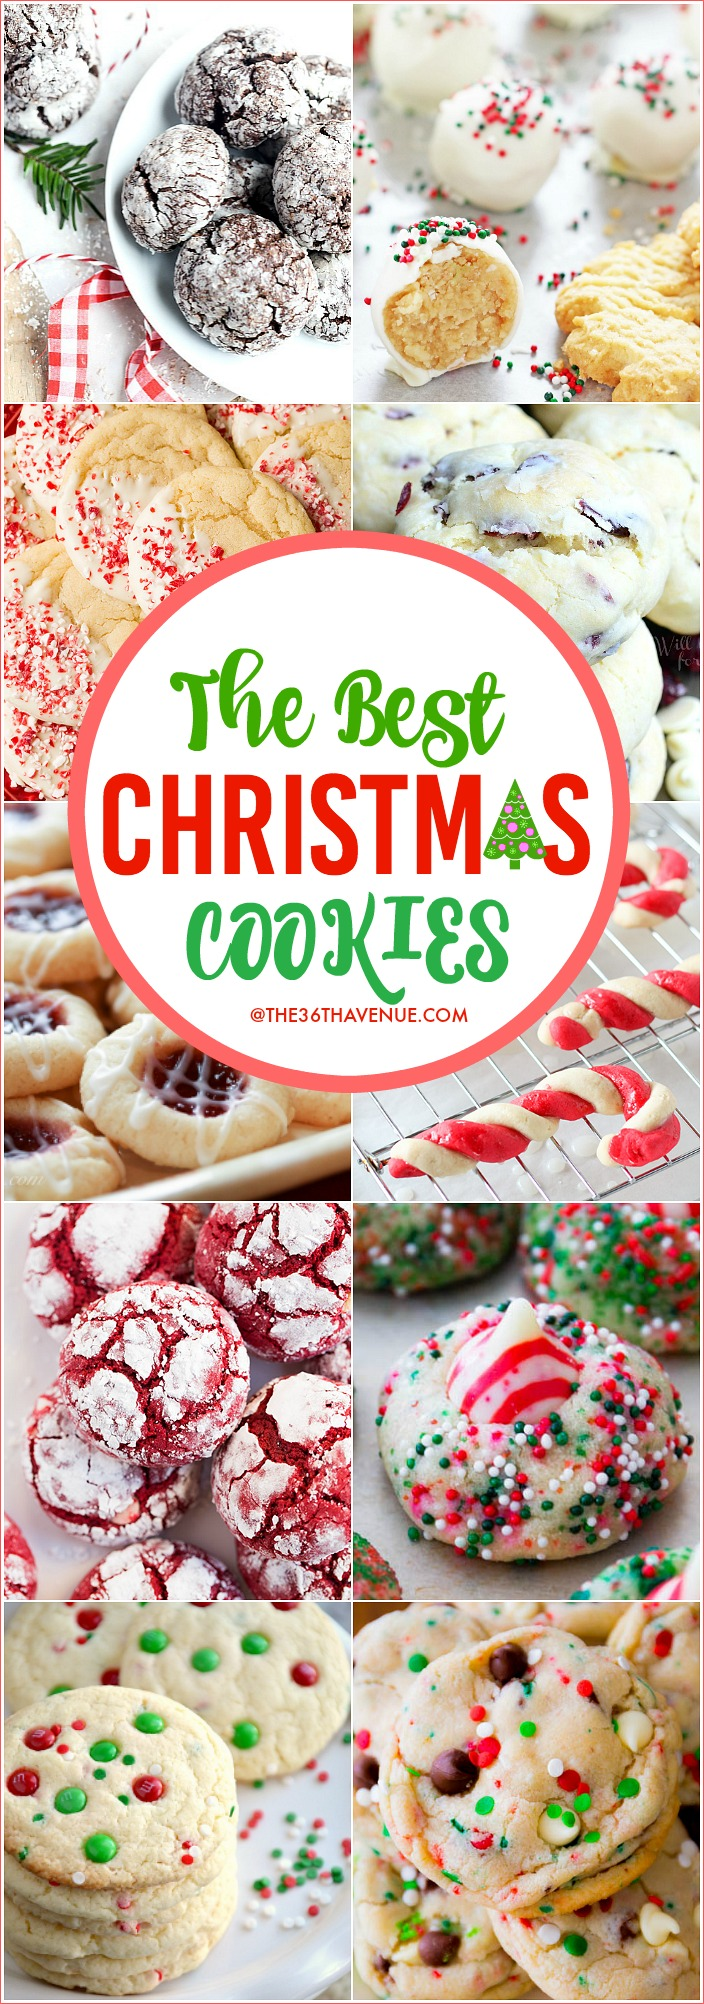 Christmas Cookies – Easy Christmas Recipes | The 36th AVENUE